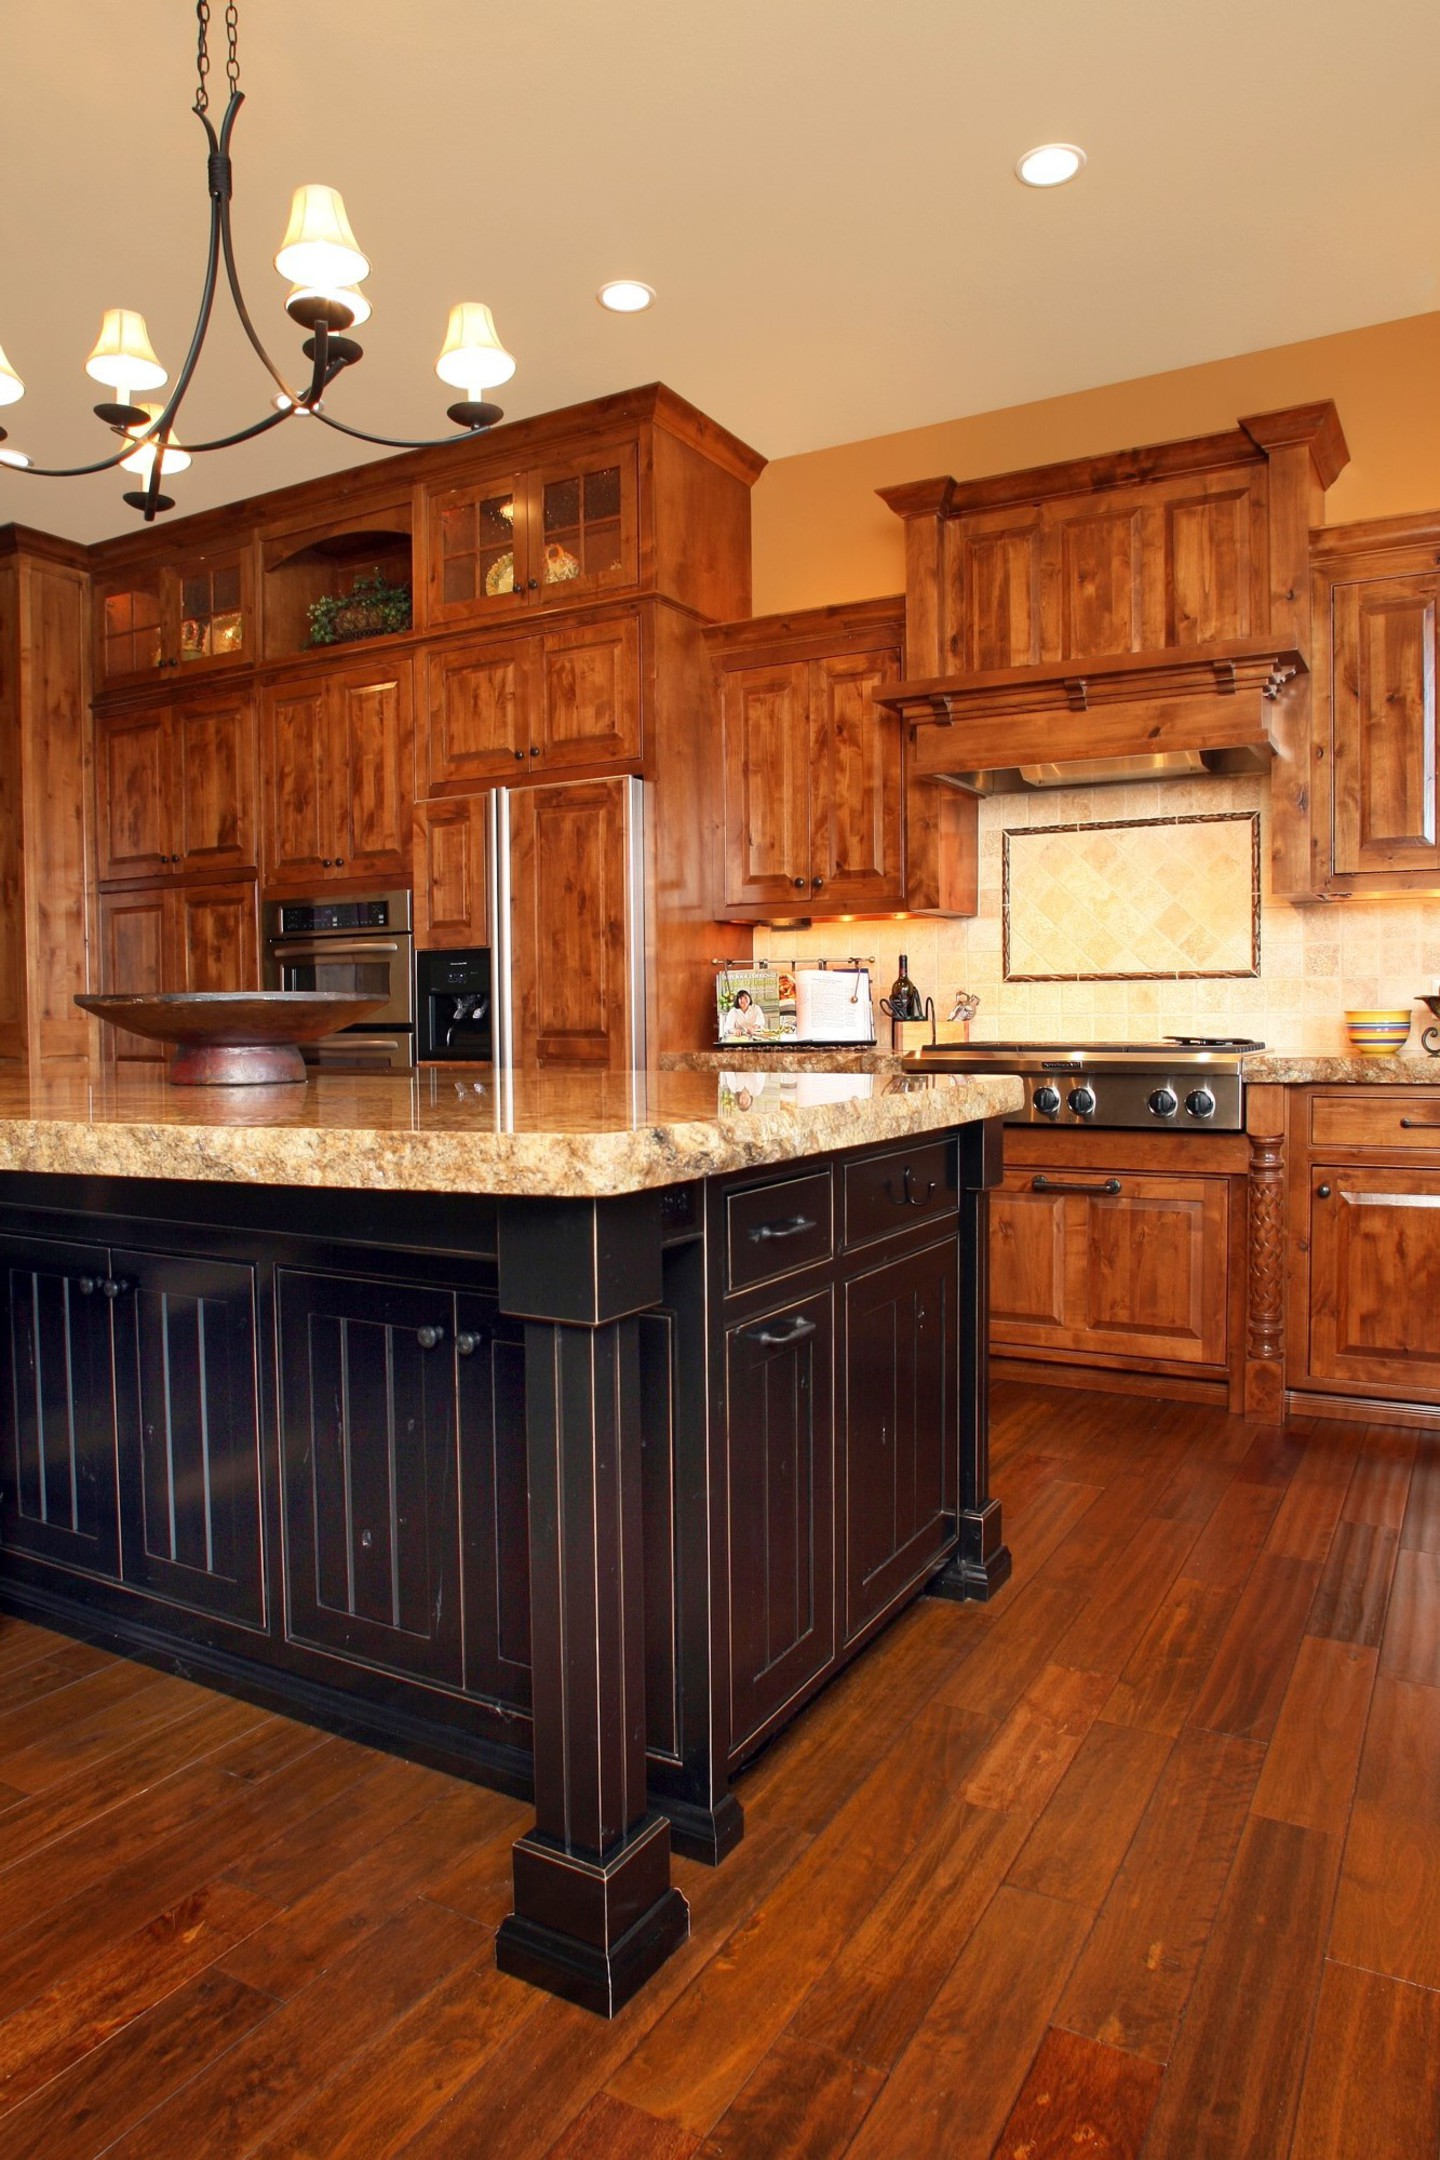 Affordable custom cabinets showroom for Black kitchen cabinets with wood doors